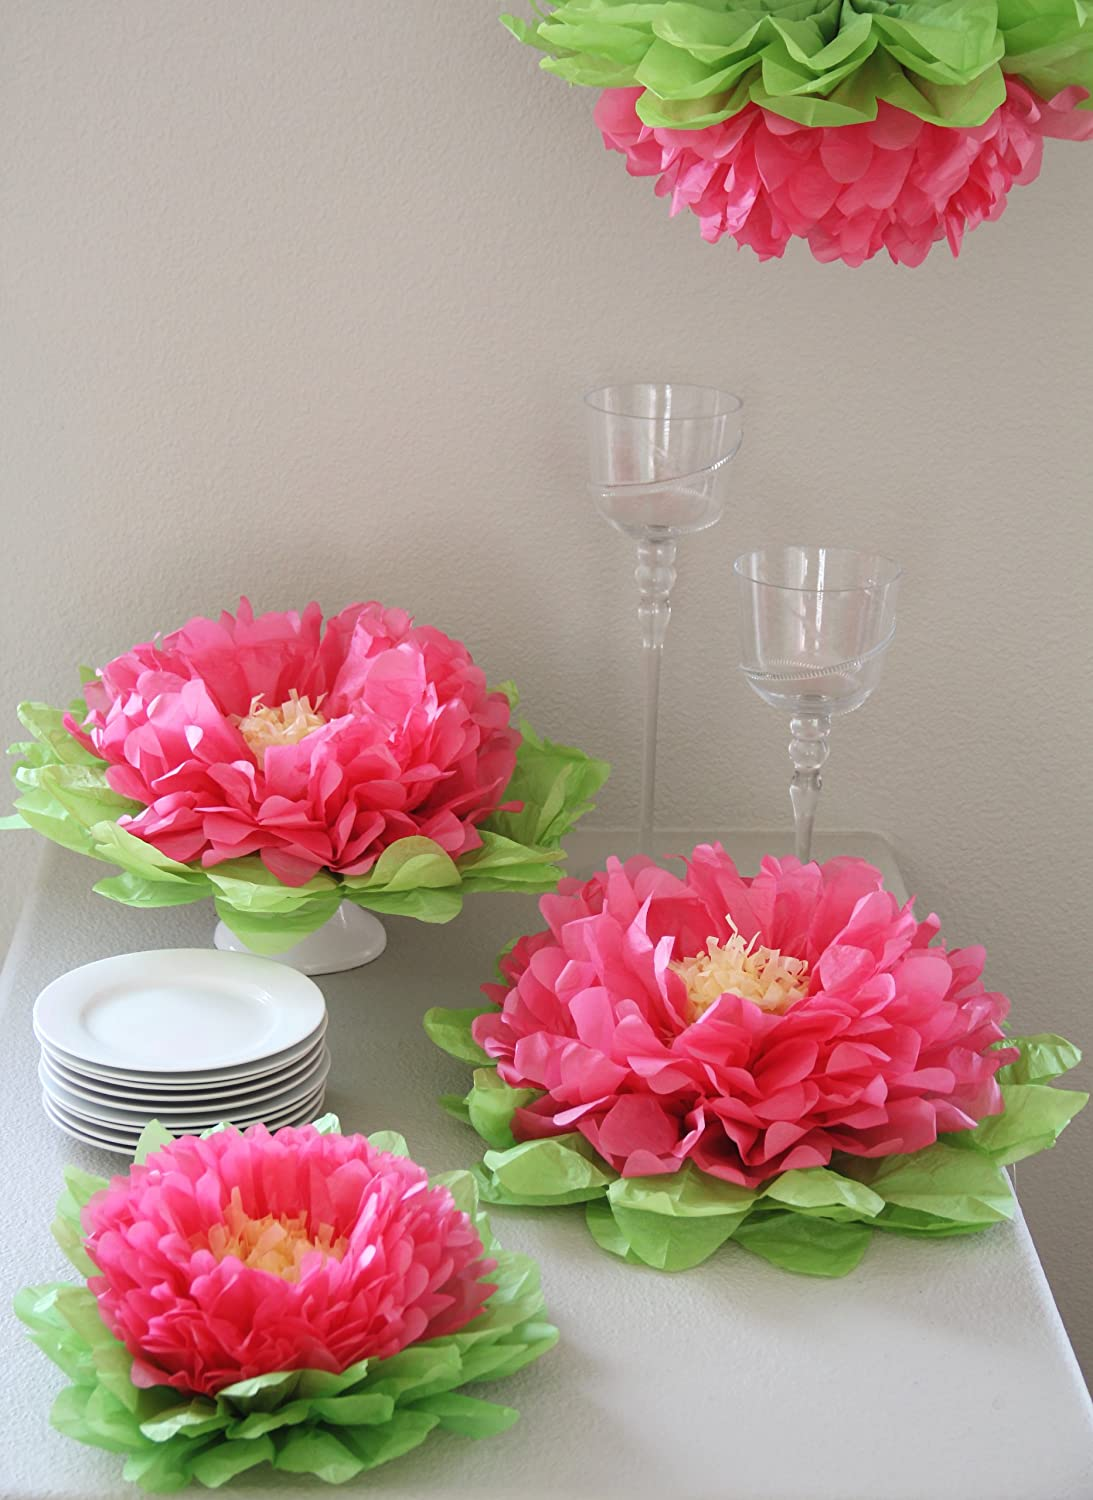 Amazon.com Butterfly Craze Girls Party Decorations - Set of 7 Pink Tissue Paper Flowers Toys u0026 Games : tissue paper flower decoration ideas - www.pureclipart.com